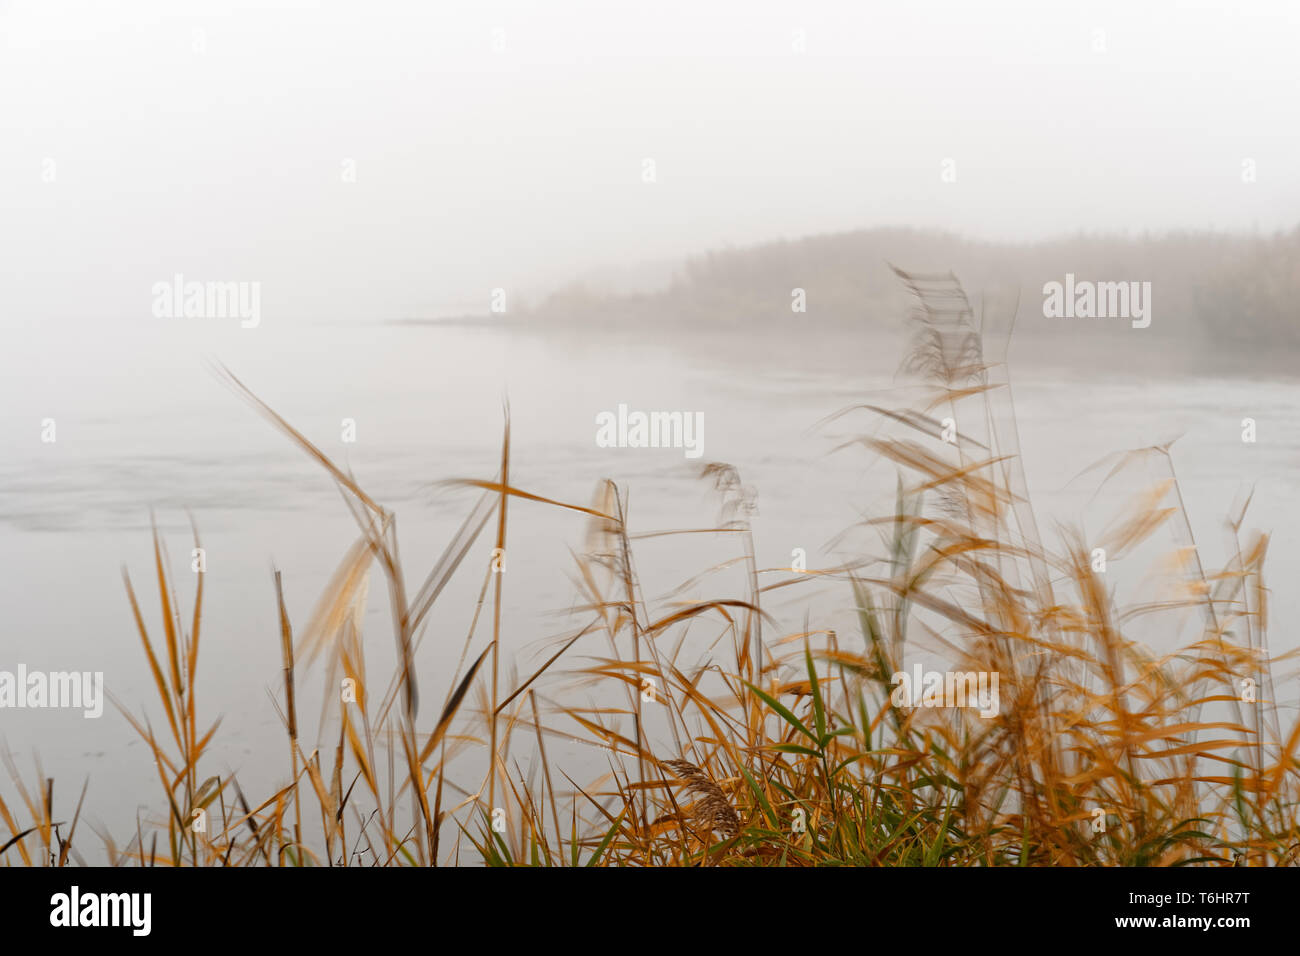 On a gentle breeze, elegantly moving stalks and grasses on the banks of the Oder in the foreground, dense morning fog makes the background only dimly  - Stock Image